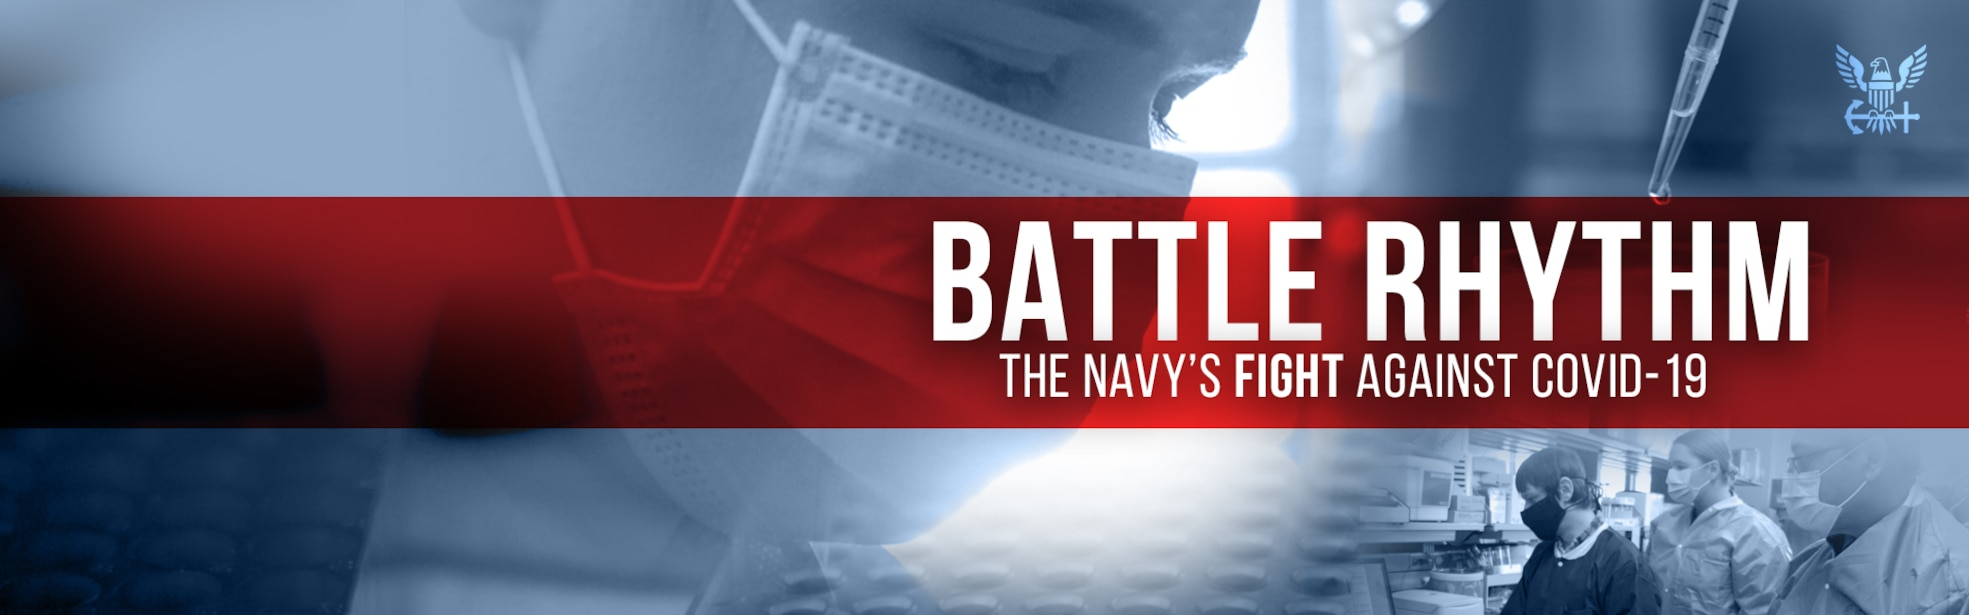 Battle Rhythm The Navy's Fight Against COVID-19